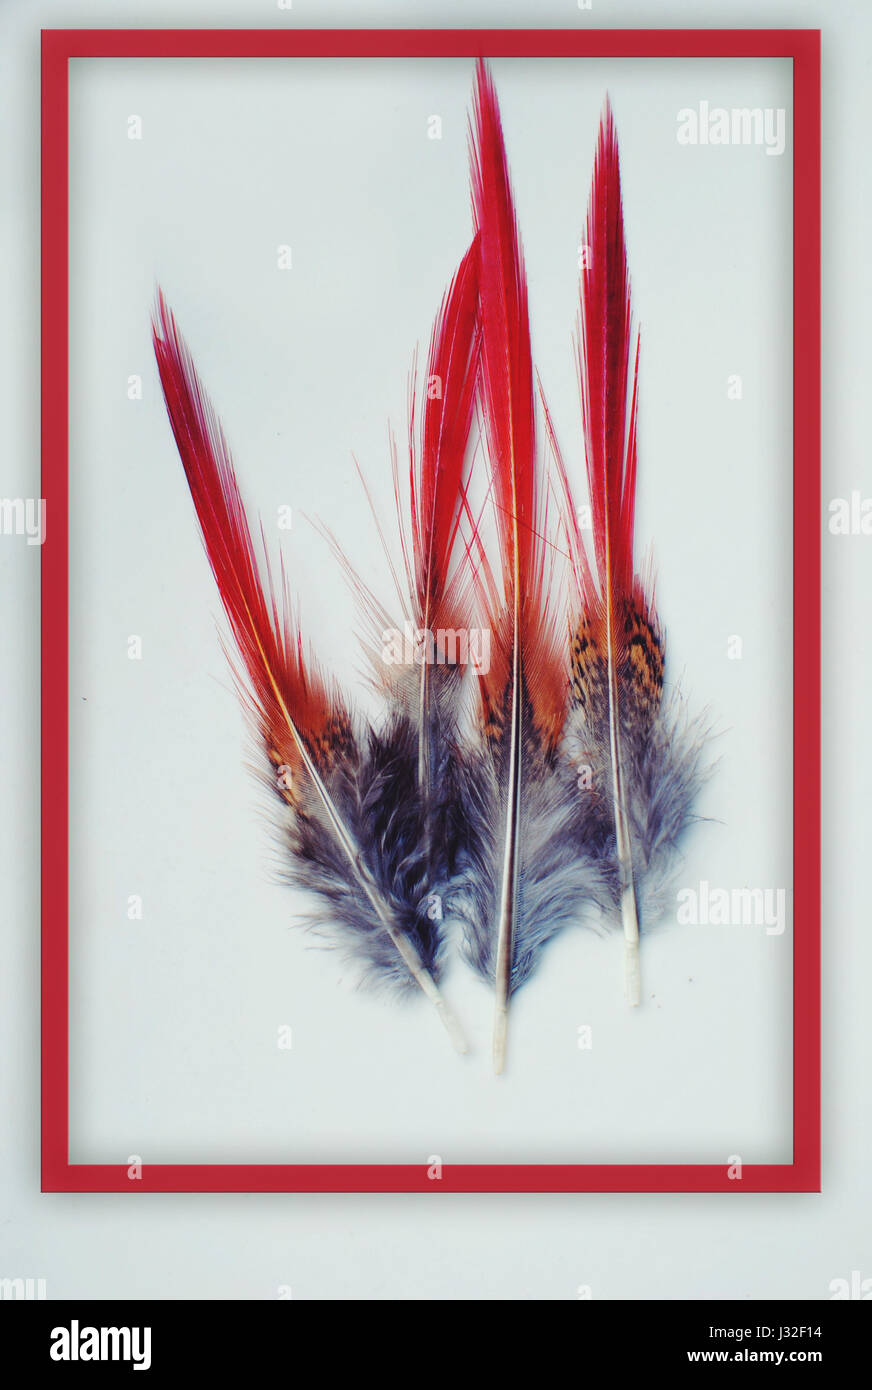 Red ended feathers. - Stock Image